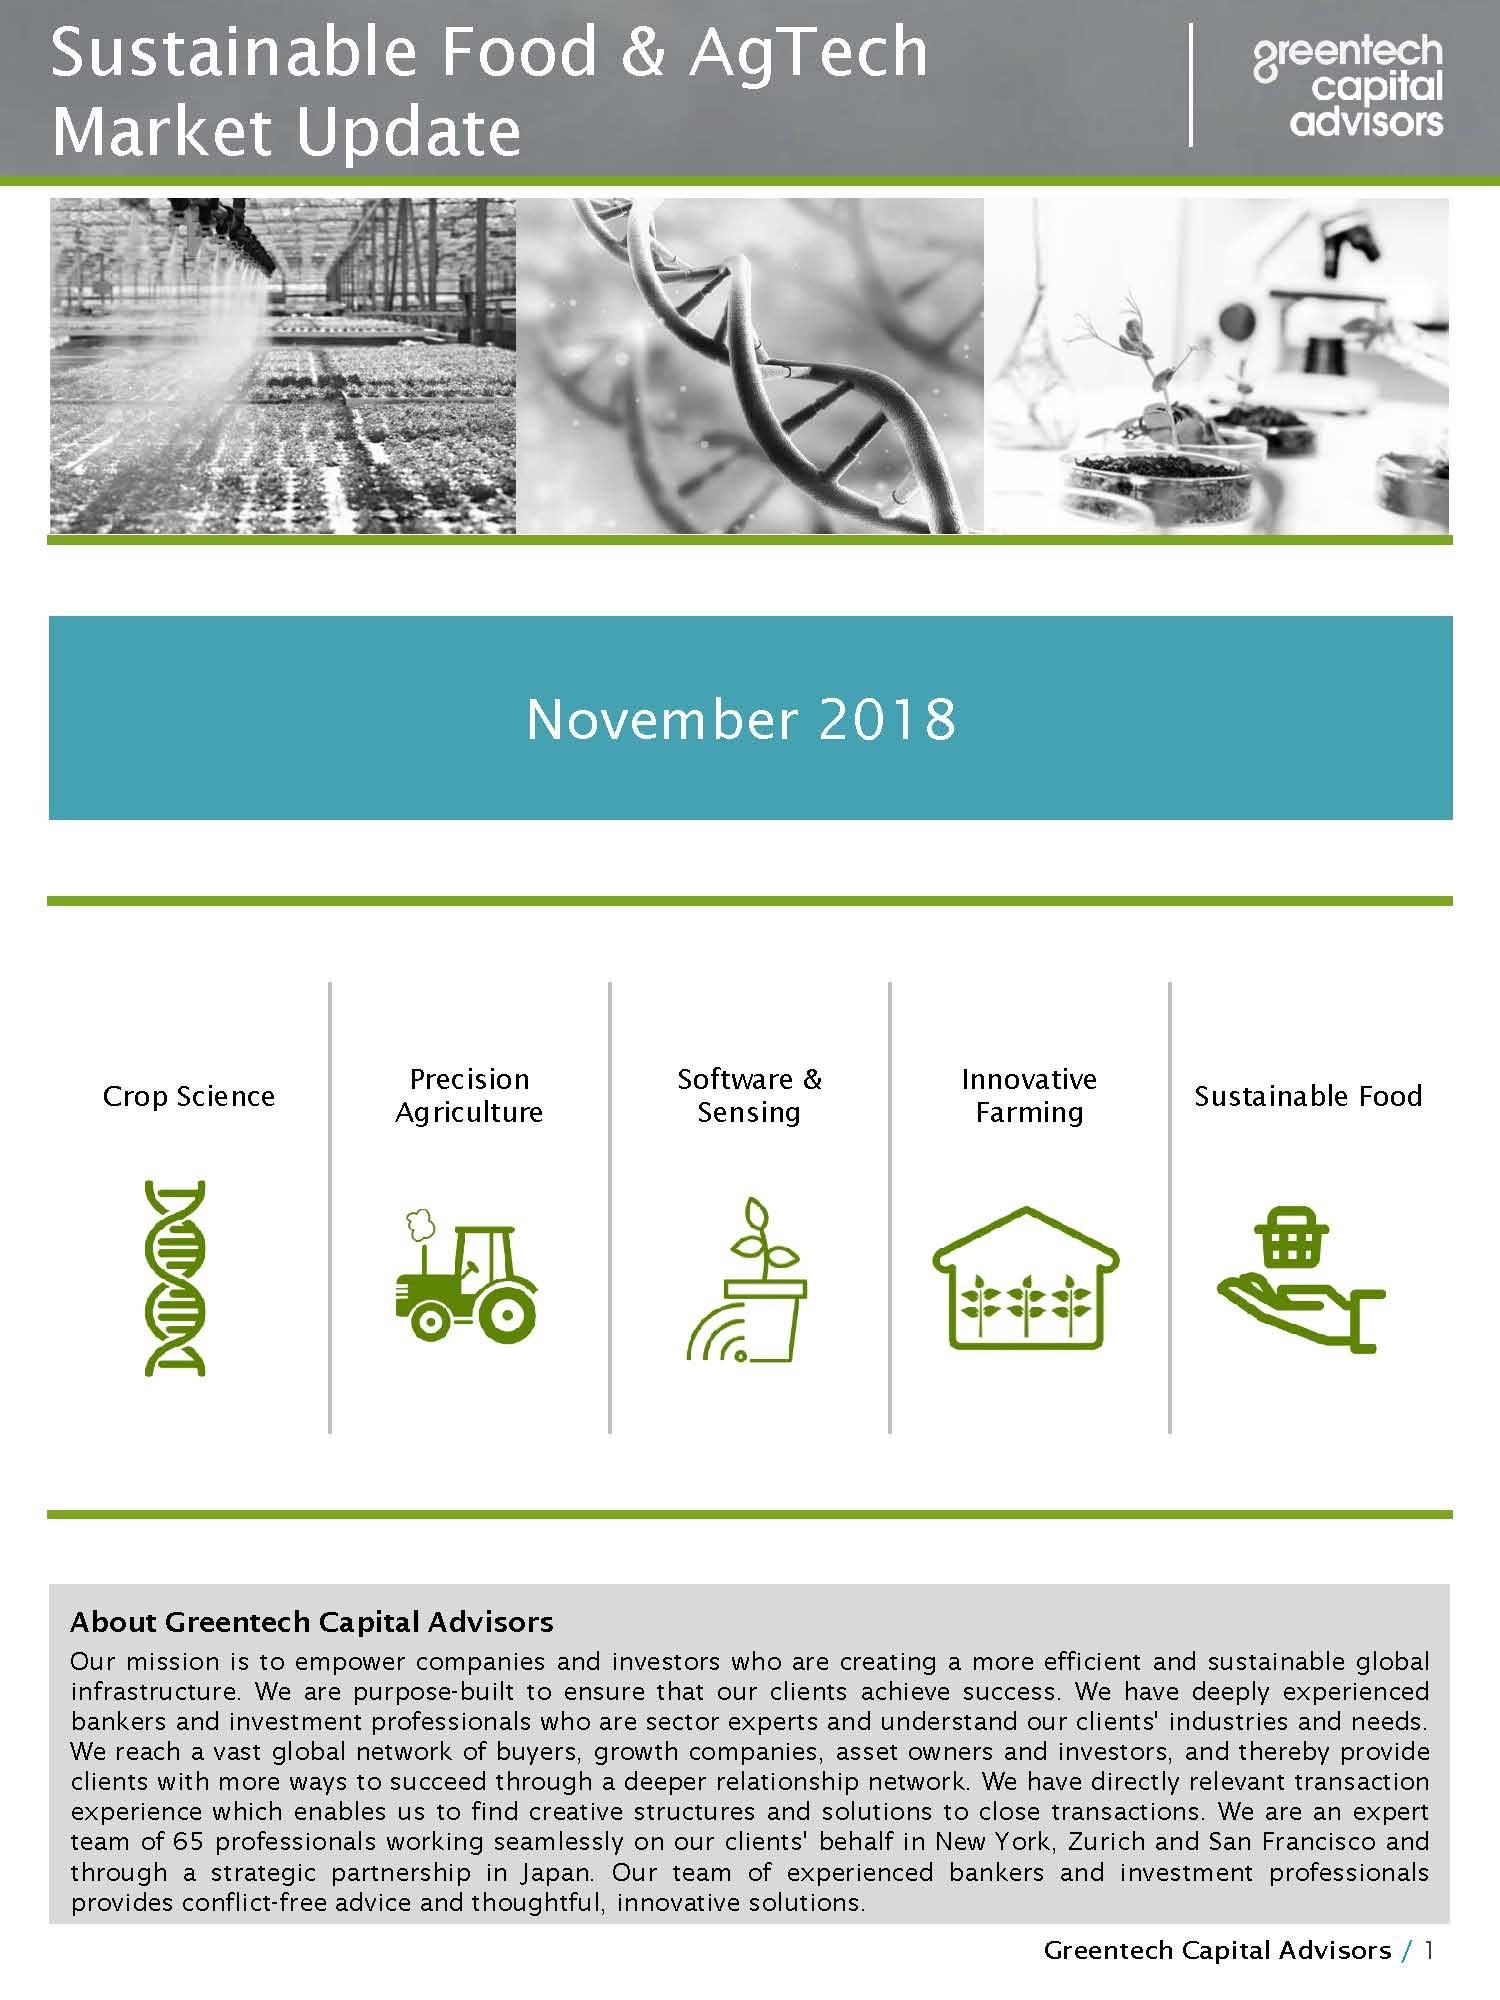 Sustainable Food & AgTech Market Update Newsletter - October 2018